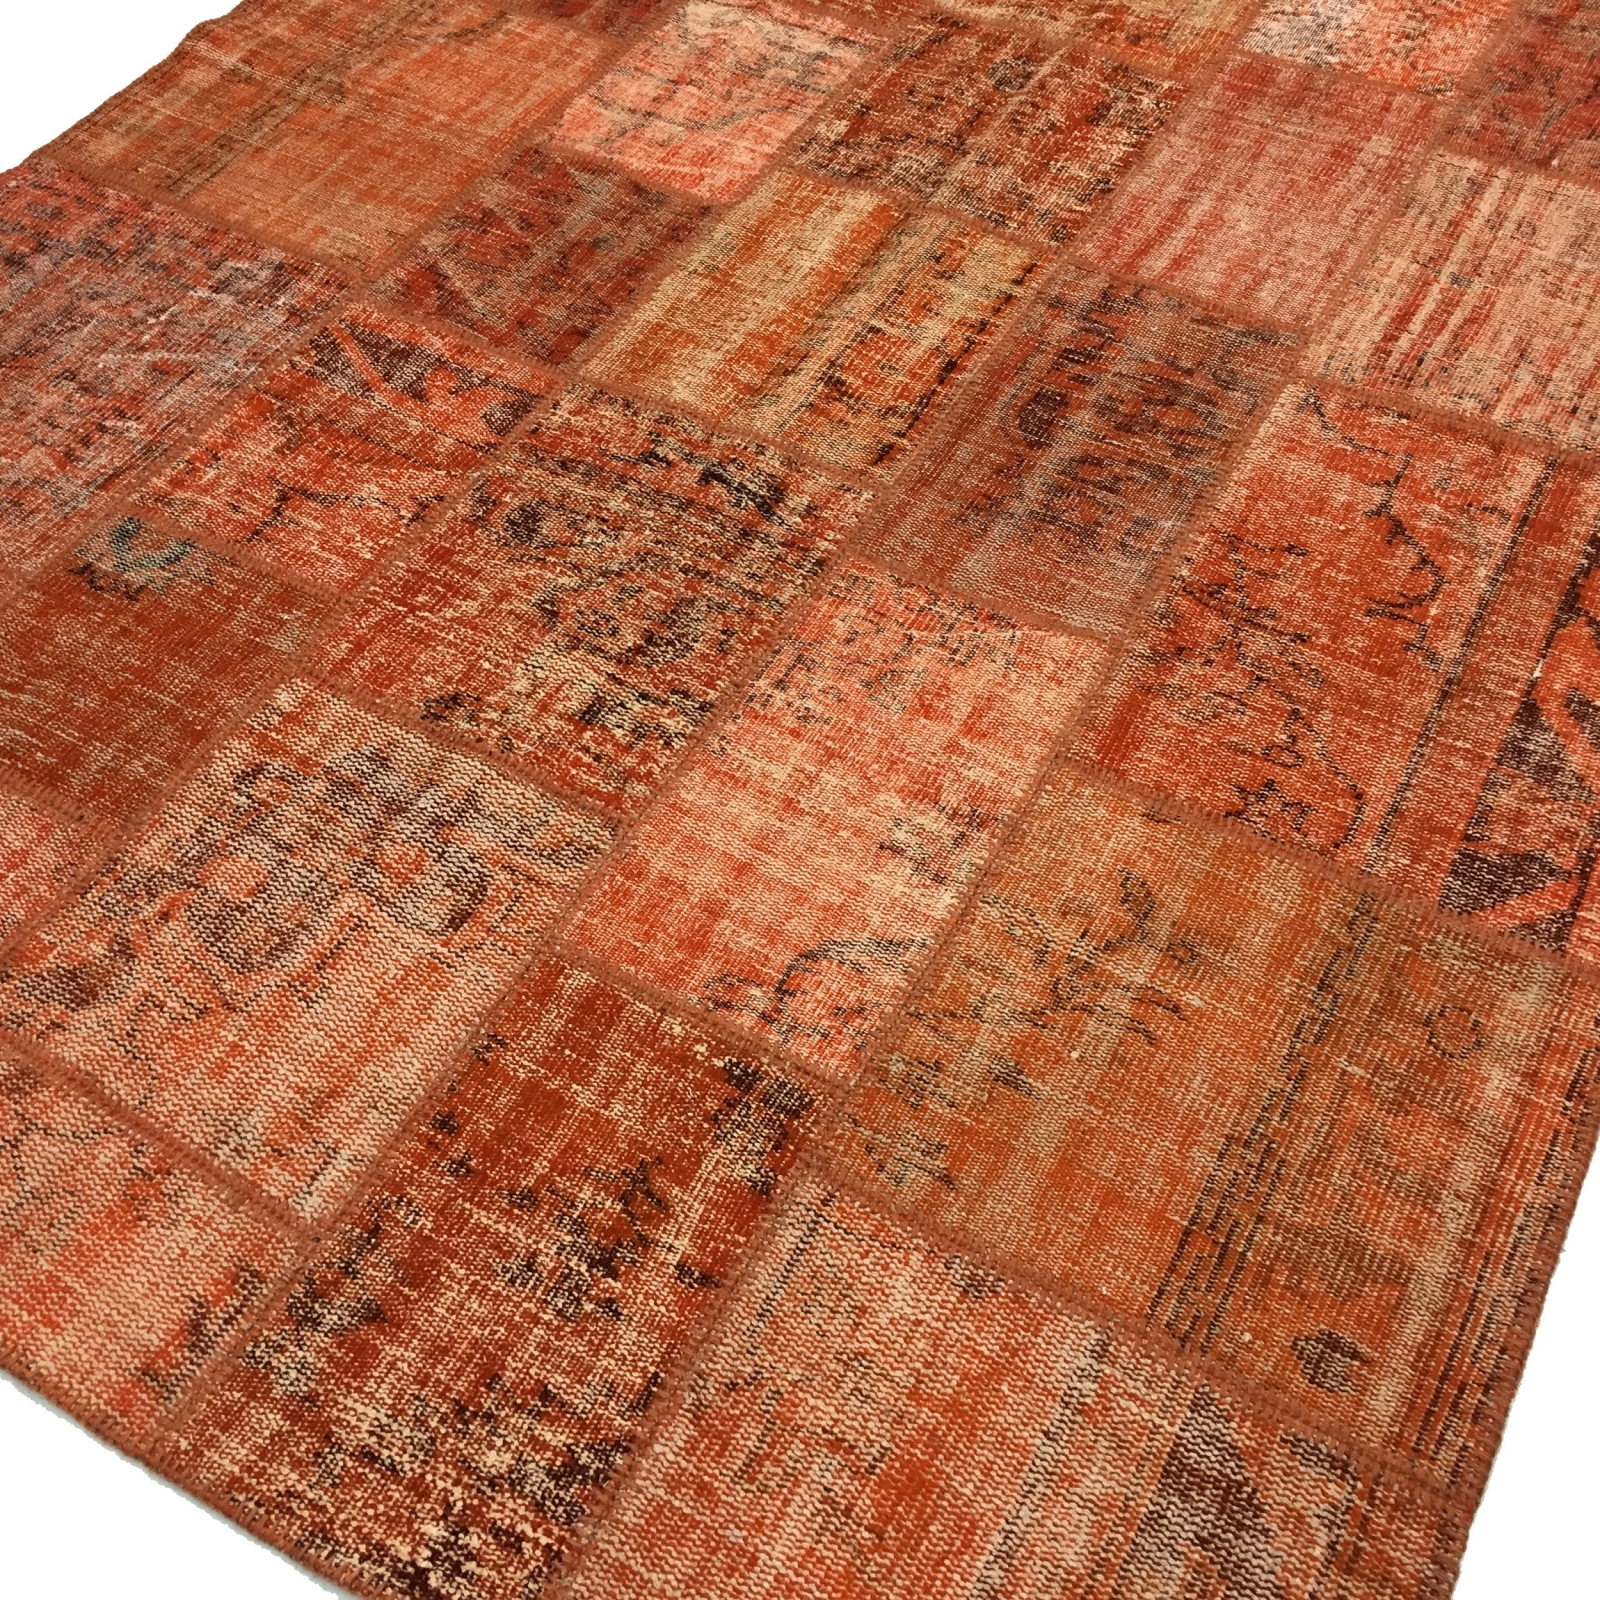 Teppich Orange Orange Vintage Patchwork Flicken Teppich 206x304cm